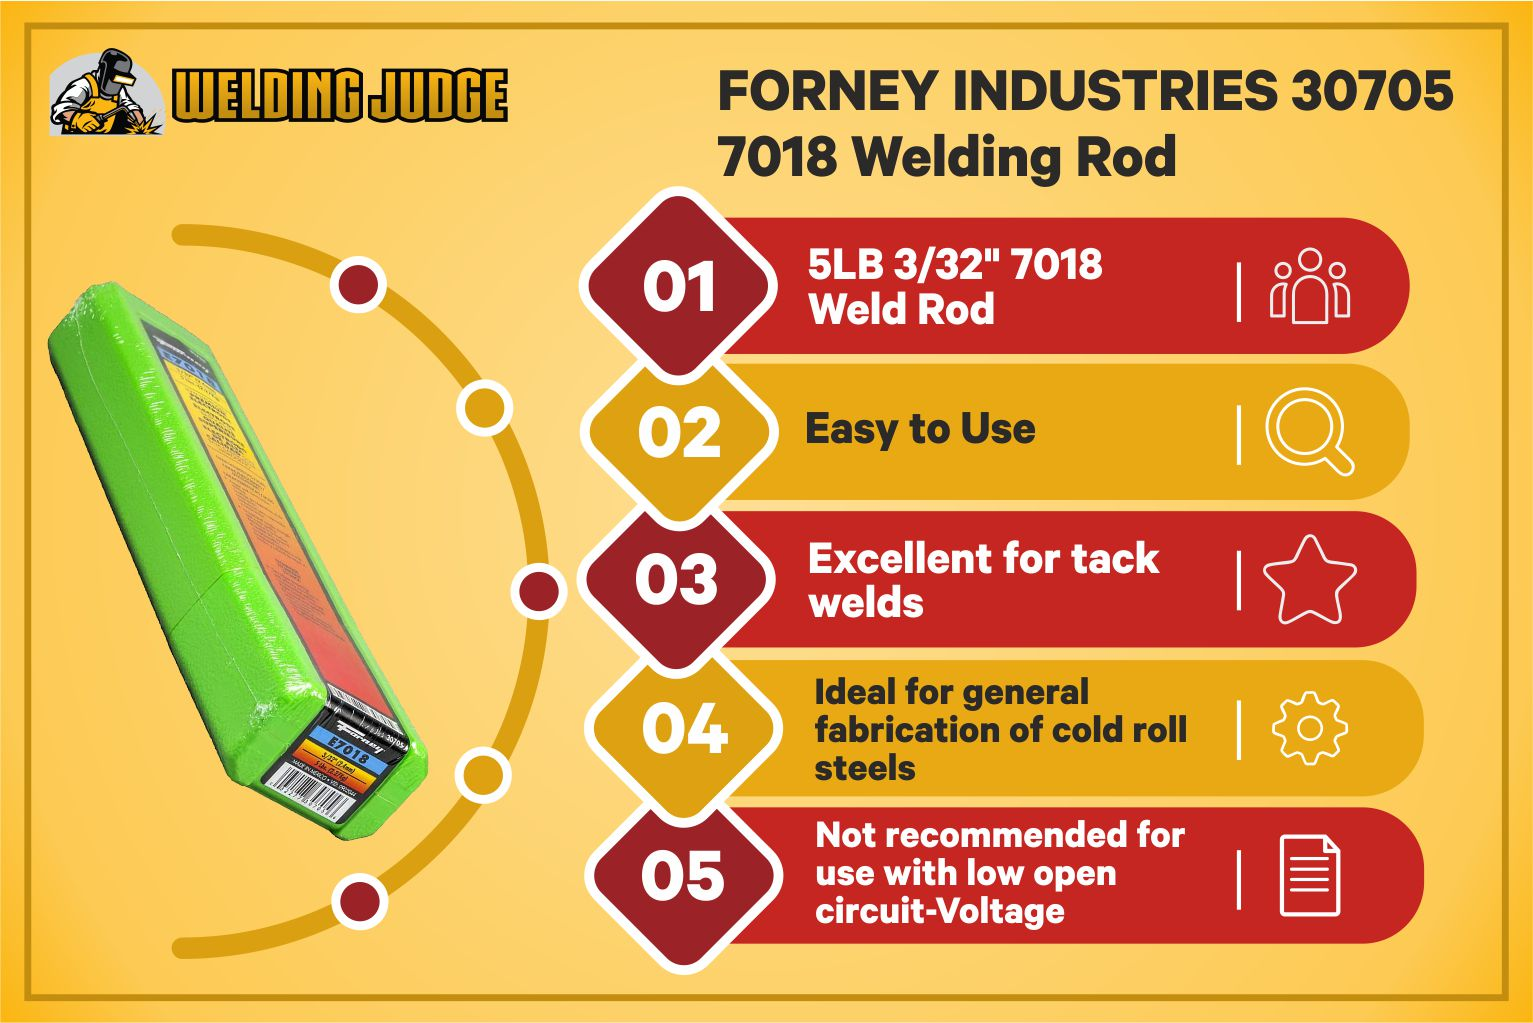 FORNEY INDUSTRIES 30705 7018 Welding Rod infographic